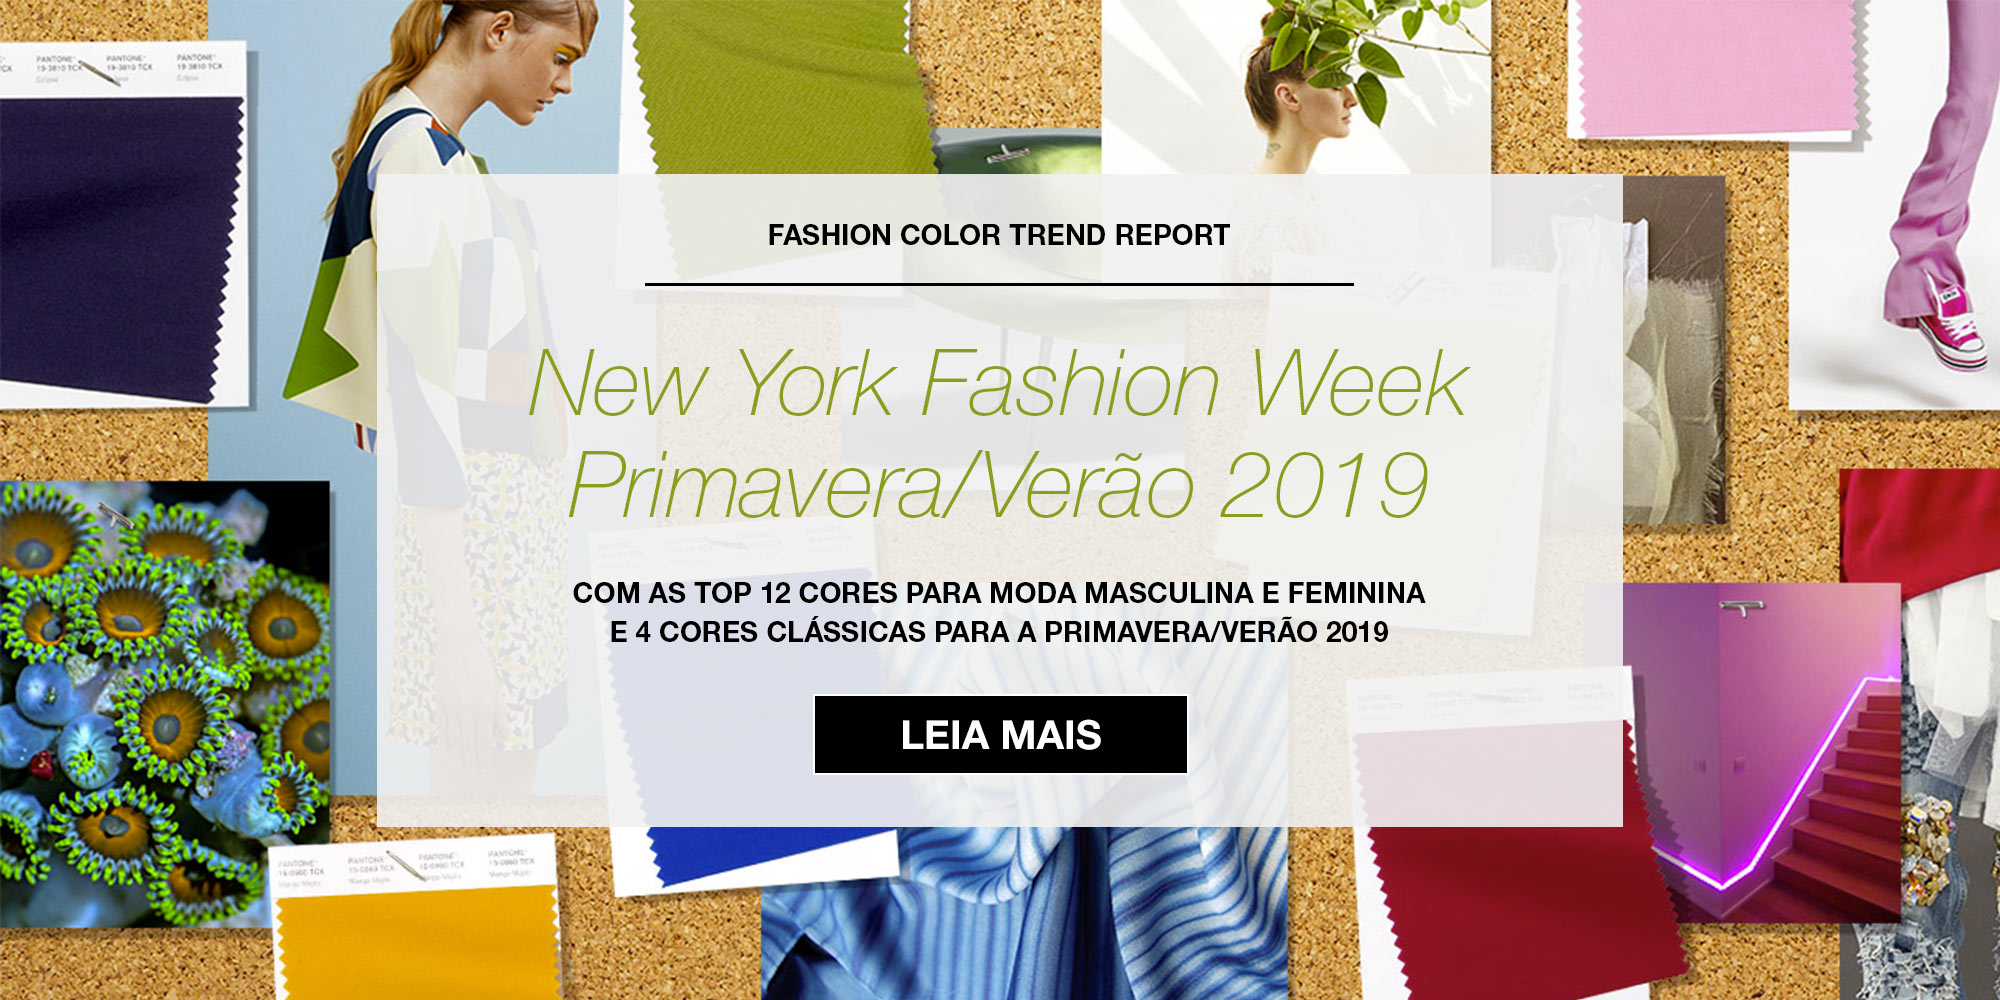 Fashion Color Report - Primavera/Verão 2019